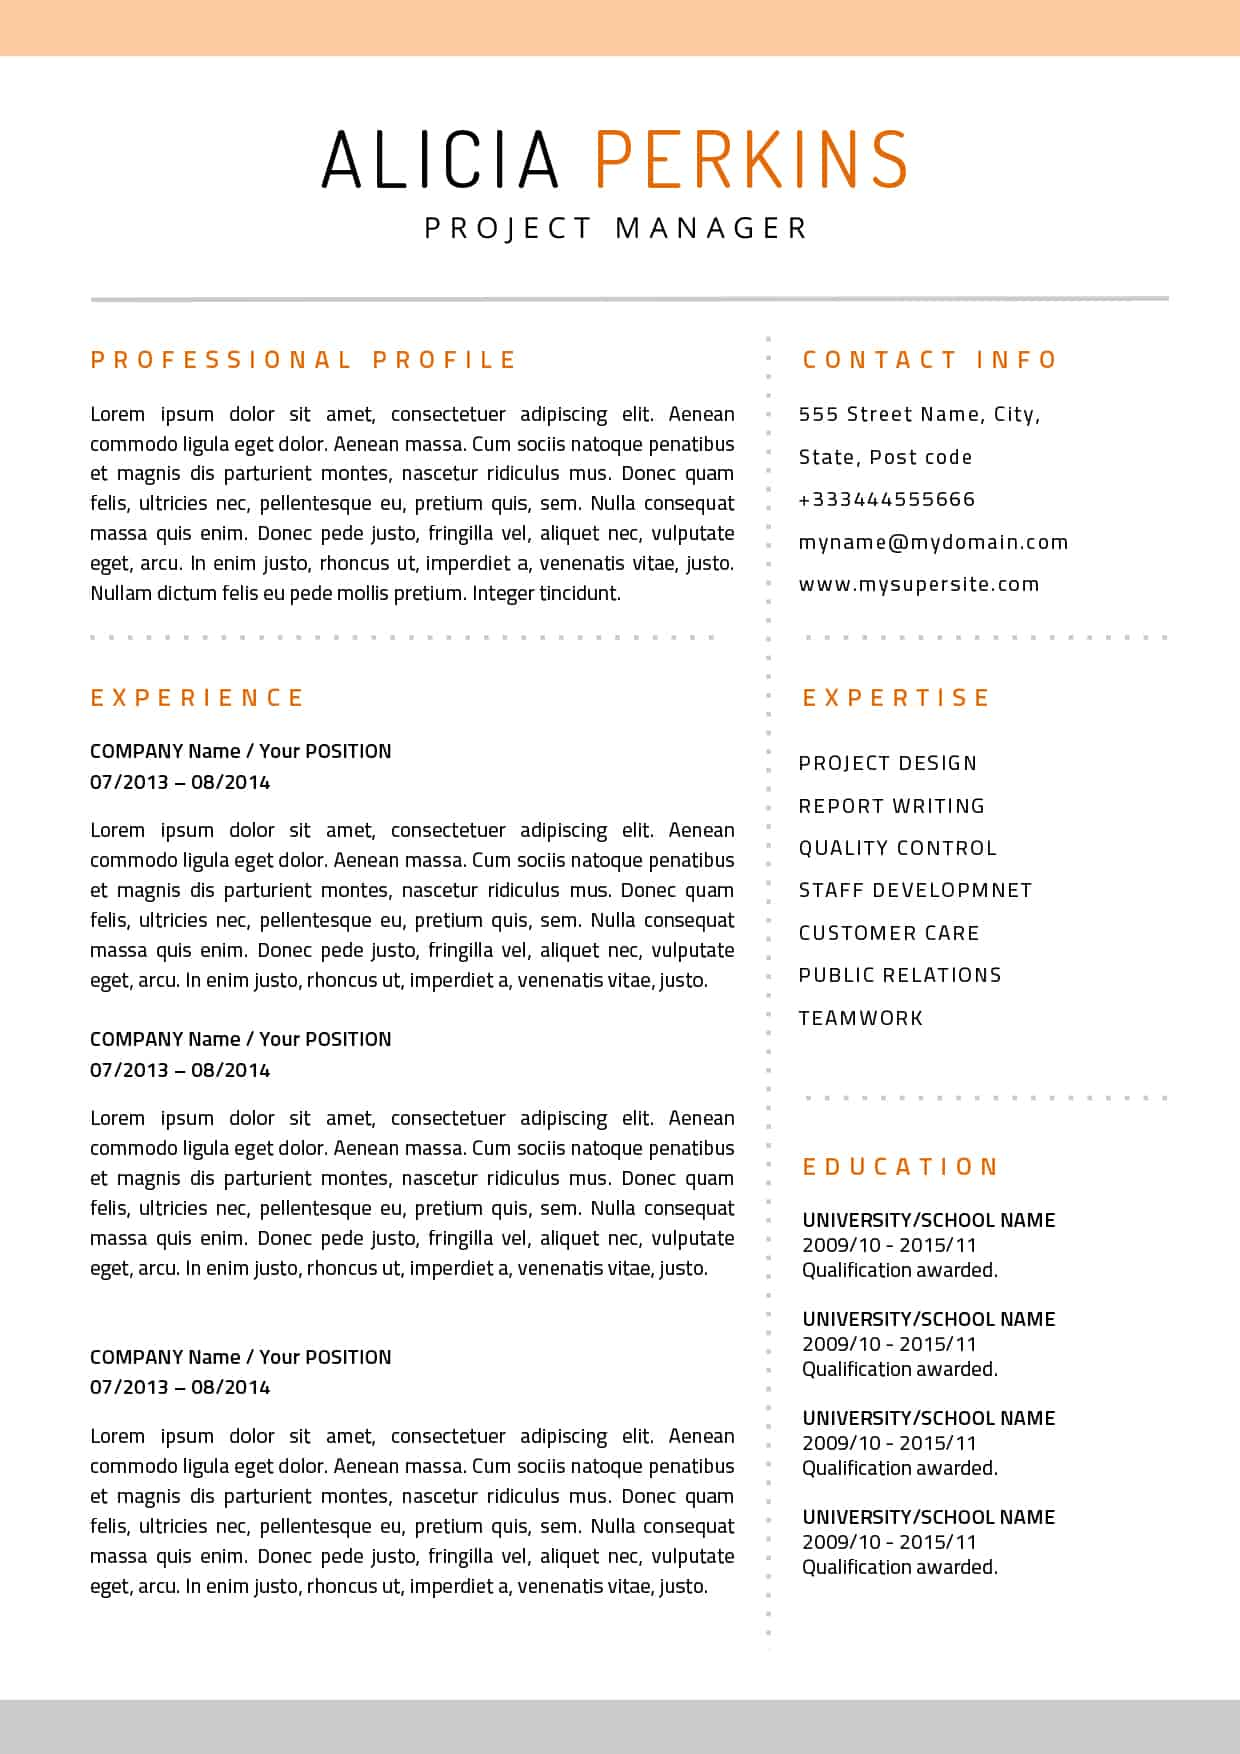 apple pages resume on etsy - Resume Template For Pages